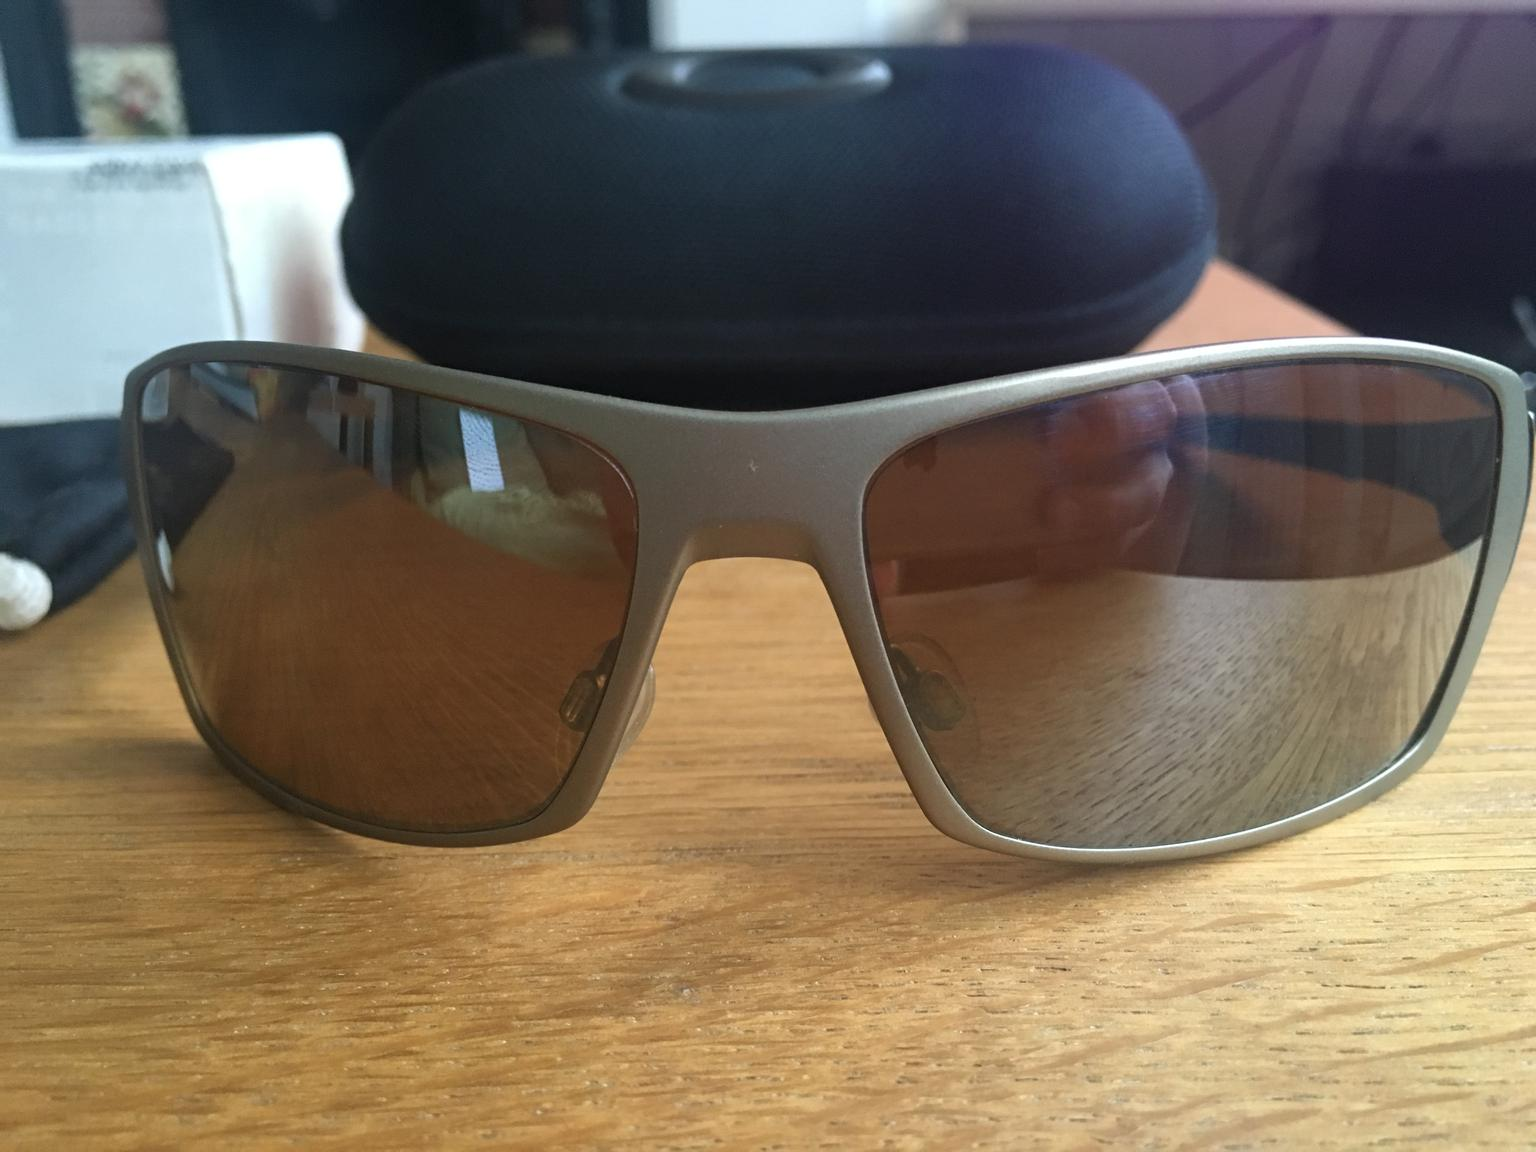 2deaf8ac09a Oakley Spike Titanium Iridium Sunglasses in SW15 London for £80.00 for sale  - Shpock